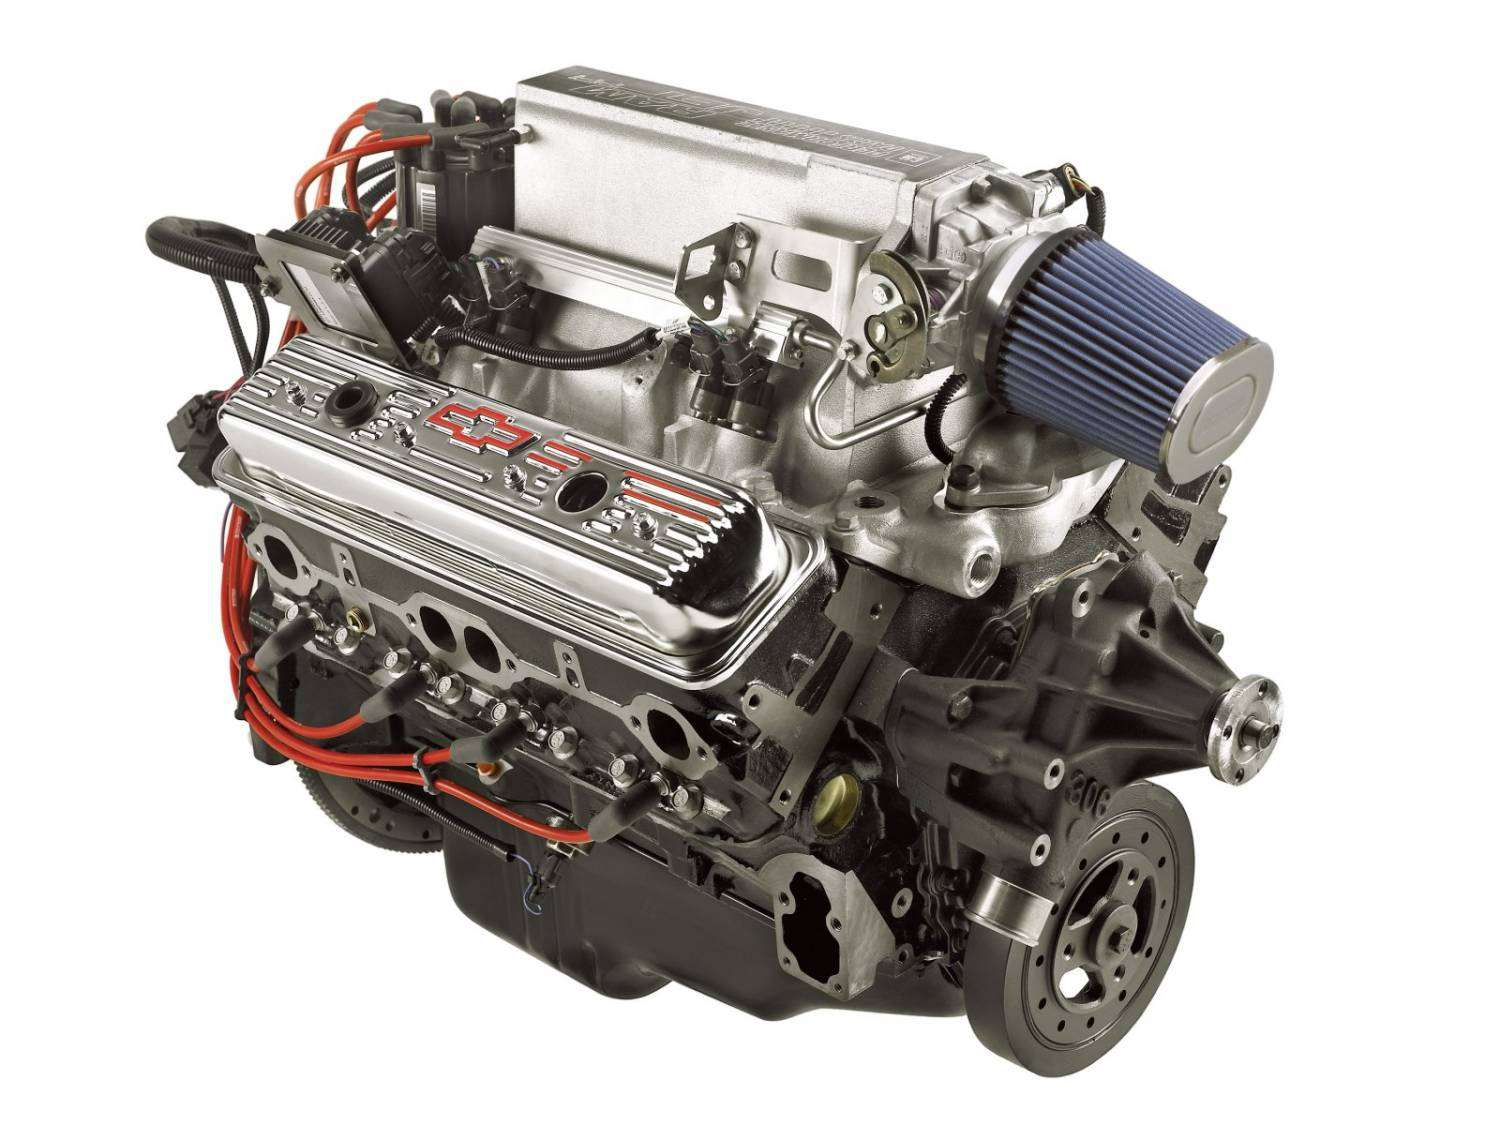 hight resolution of chevrolet performance parts 19417619 gm ram jet 350 crate engine